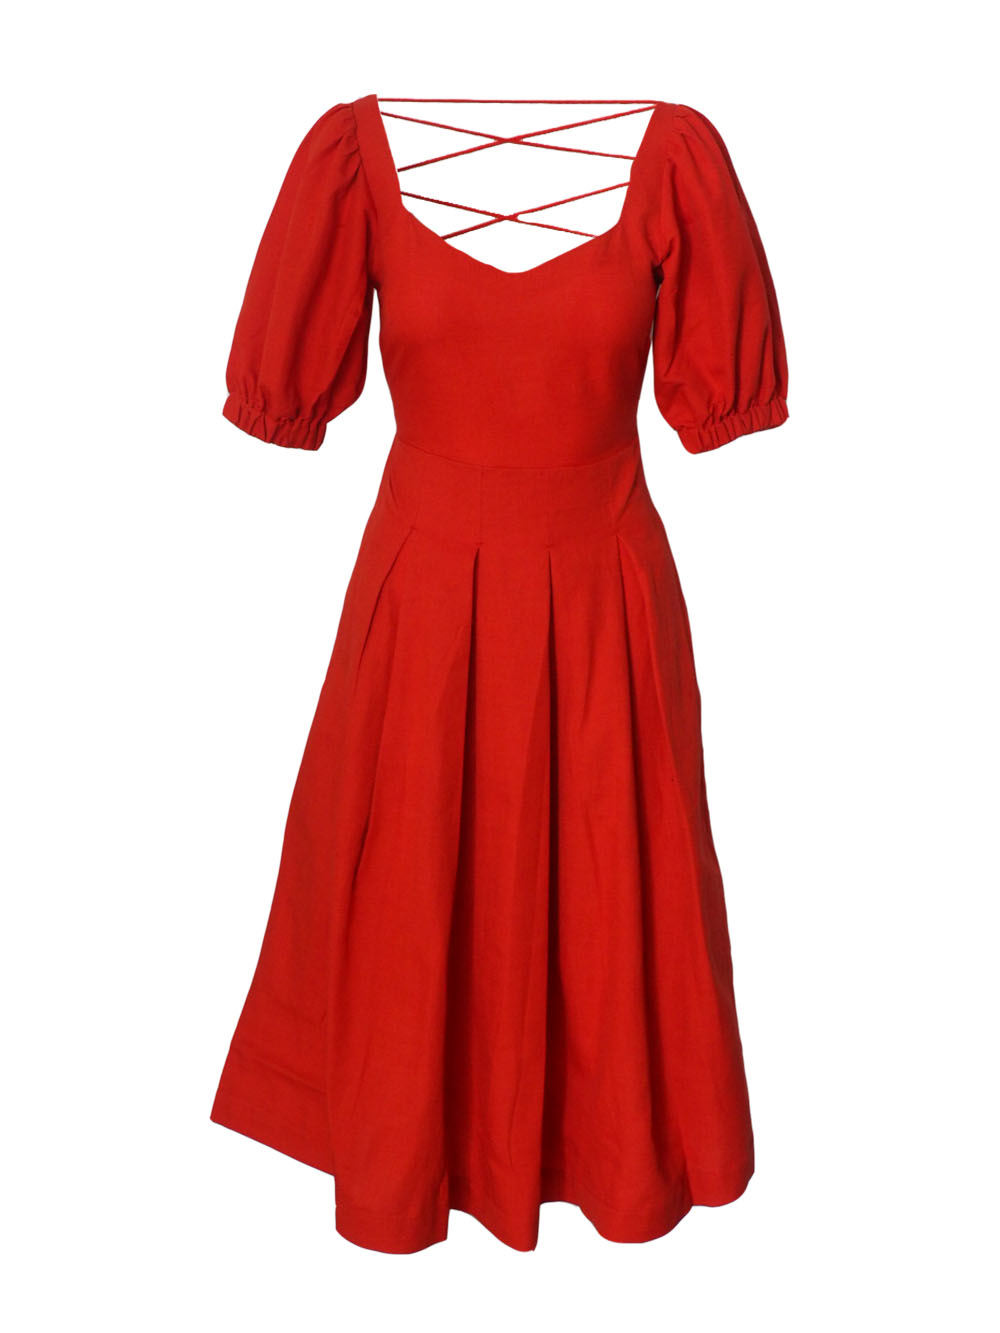 Red Ajaie ALaie Dress.jpg